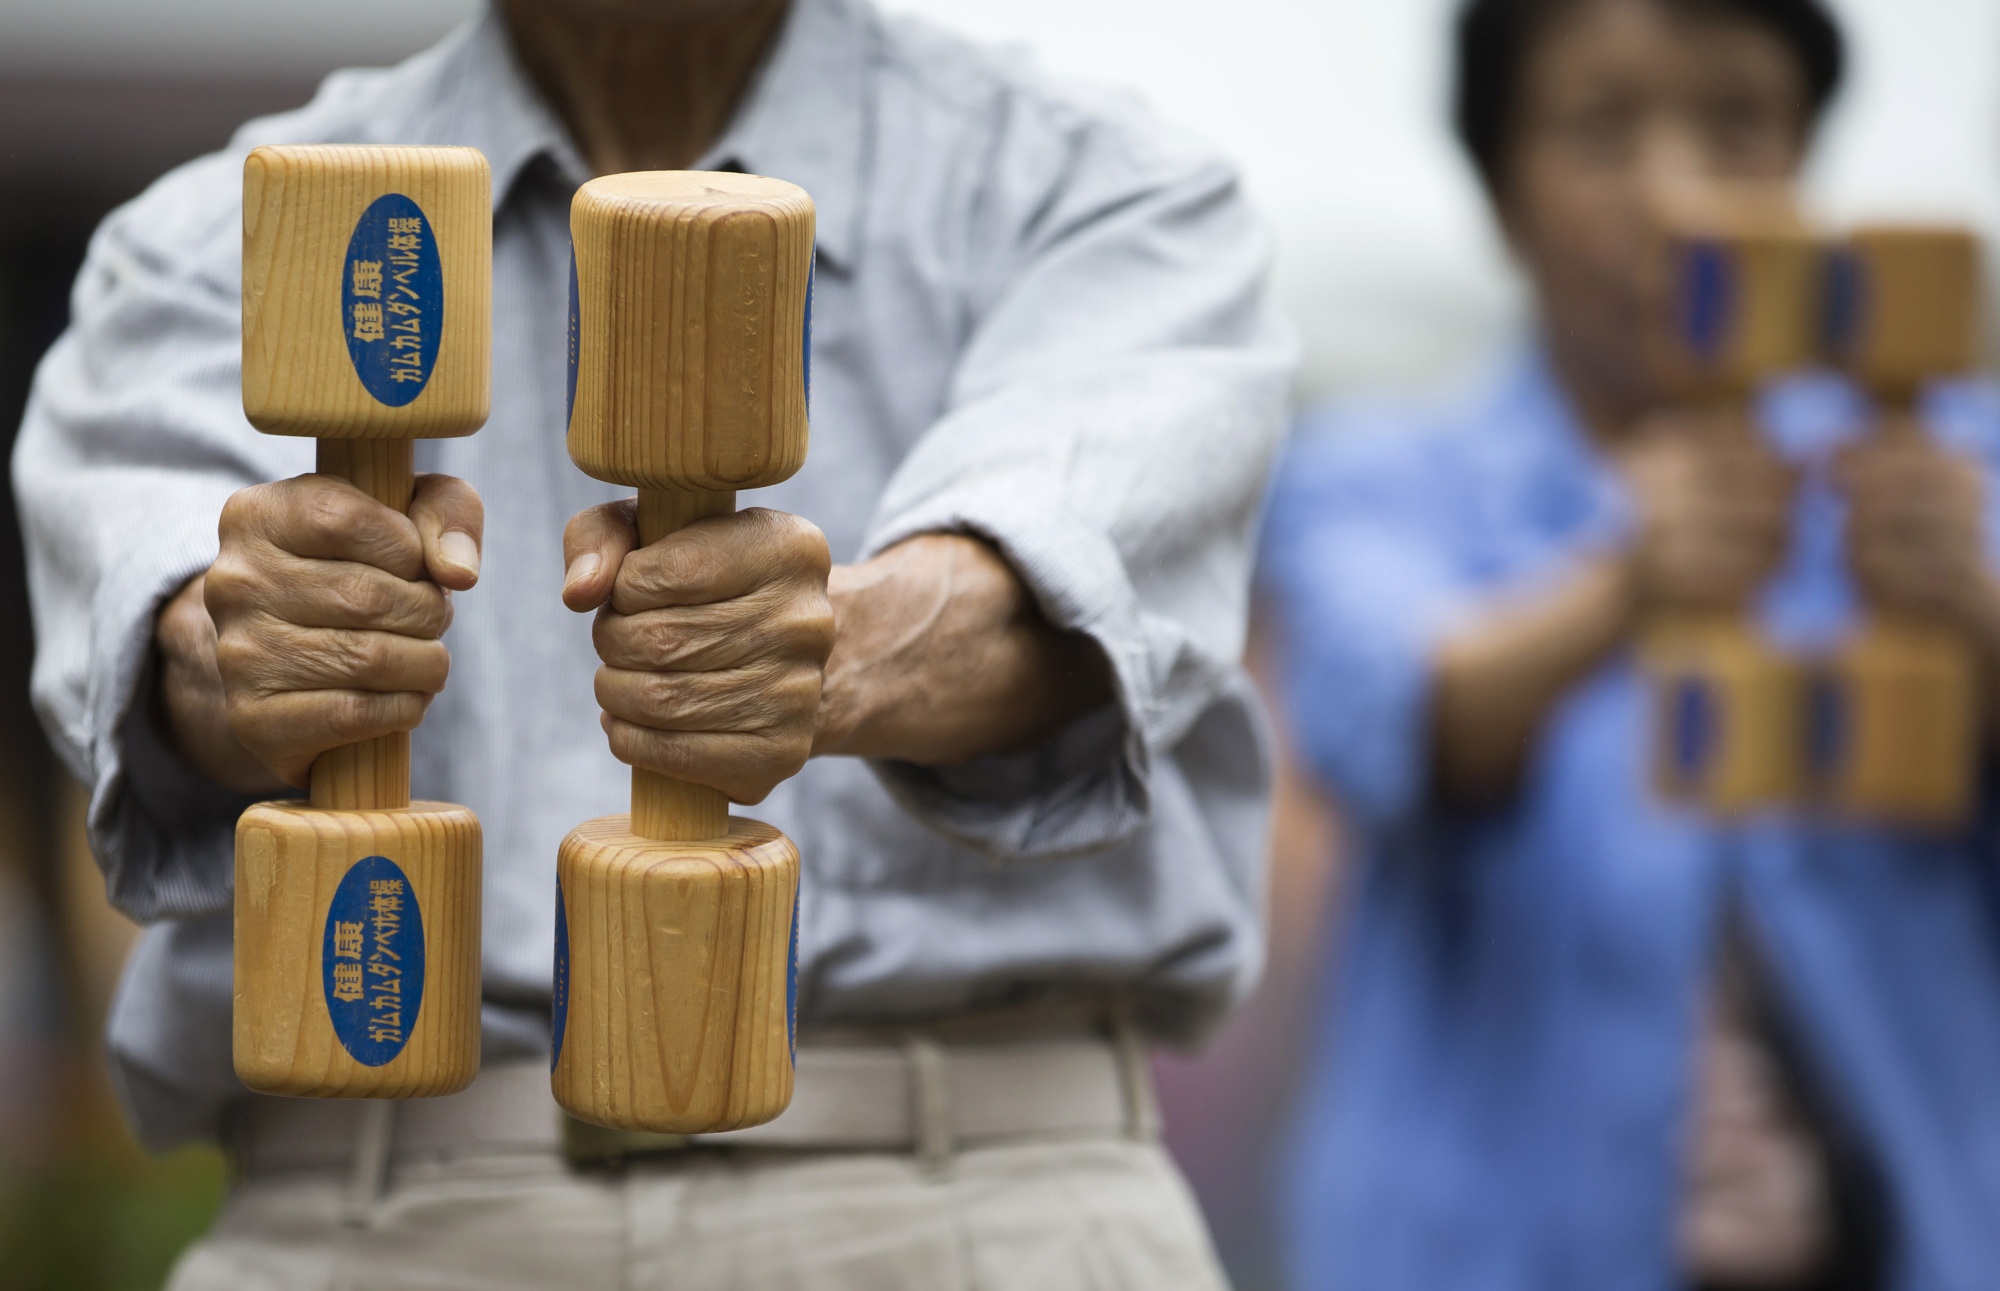 People exercise with wooden dumbbells during an event marking Respect for the Aged Day at a temple in the Sugamo district of Tokyo in September 2016. A new report has said that a quarter of Japan's breadwinners will turn 75 or older by 2040. | BLOOMBERG